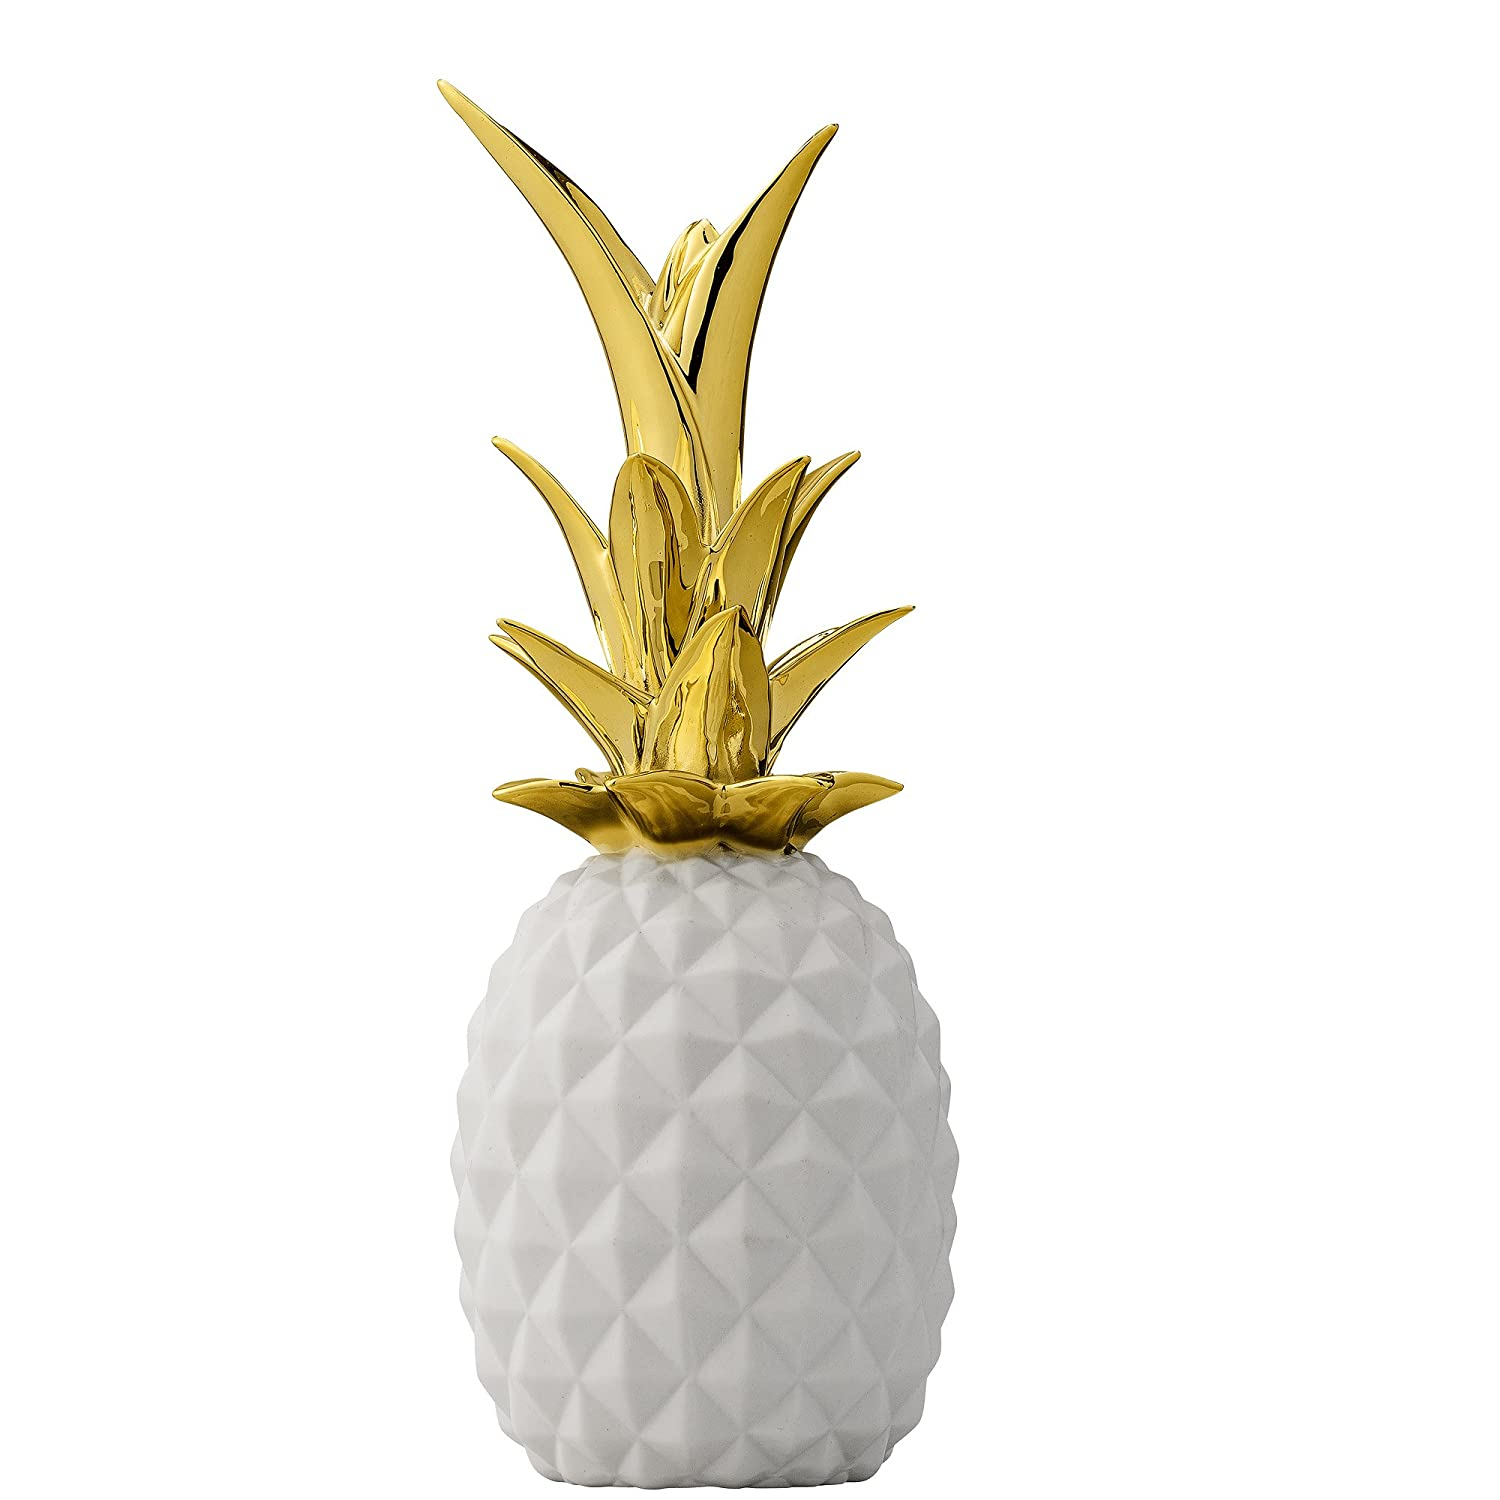 White and Gold Ceramic Pineapple Amazon.in Home & Kitchen